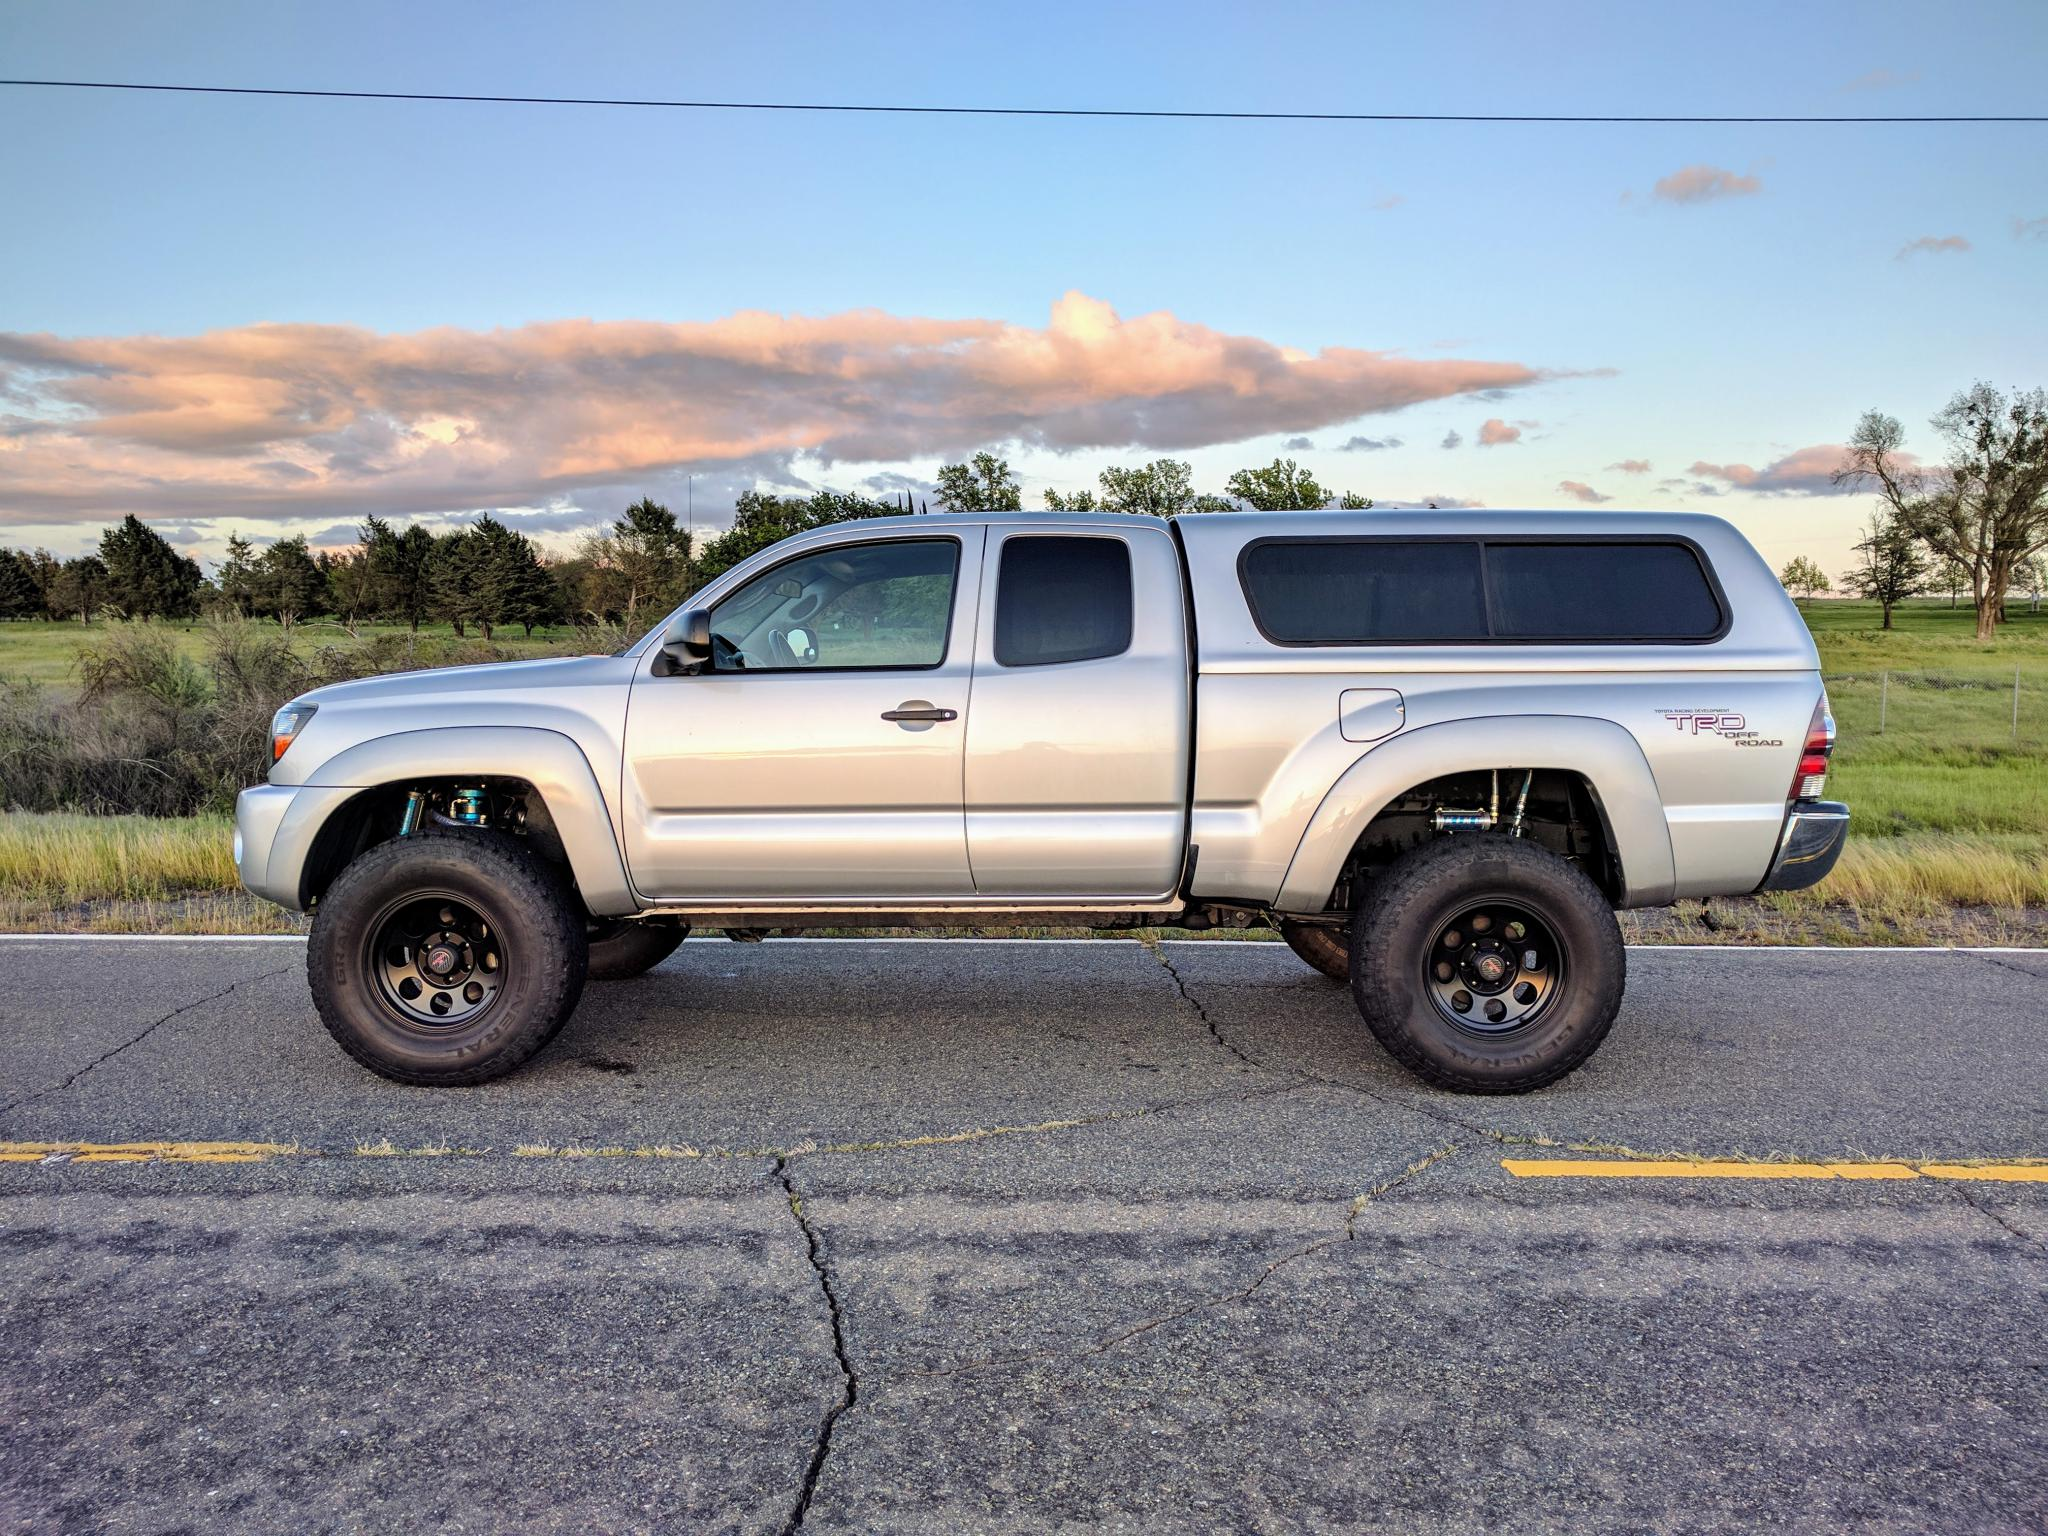 2006 Toyota Tacoma TRD Off Road 6 Speed 4x4 Possible Trade